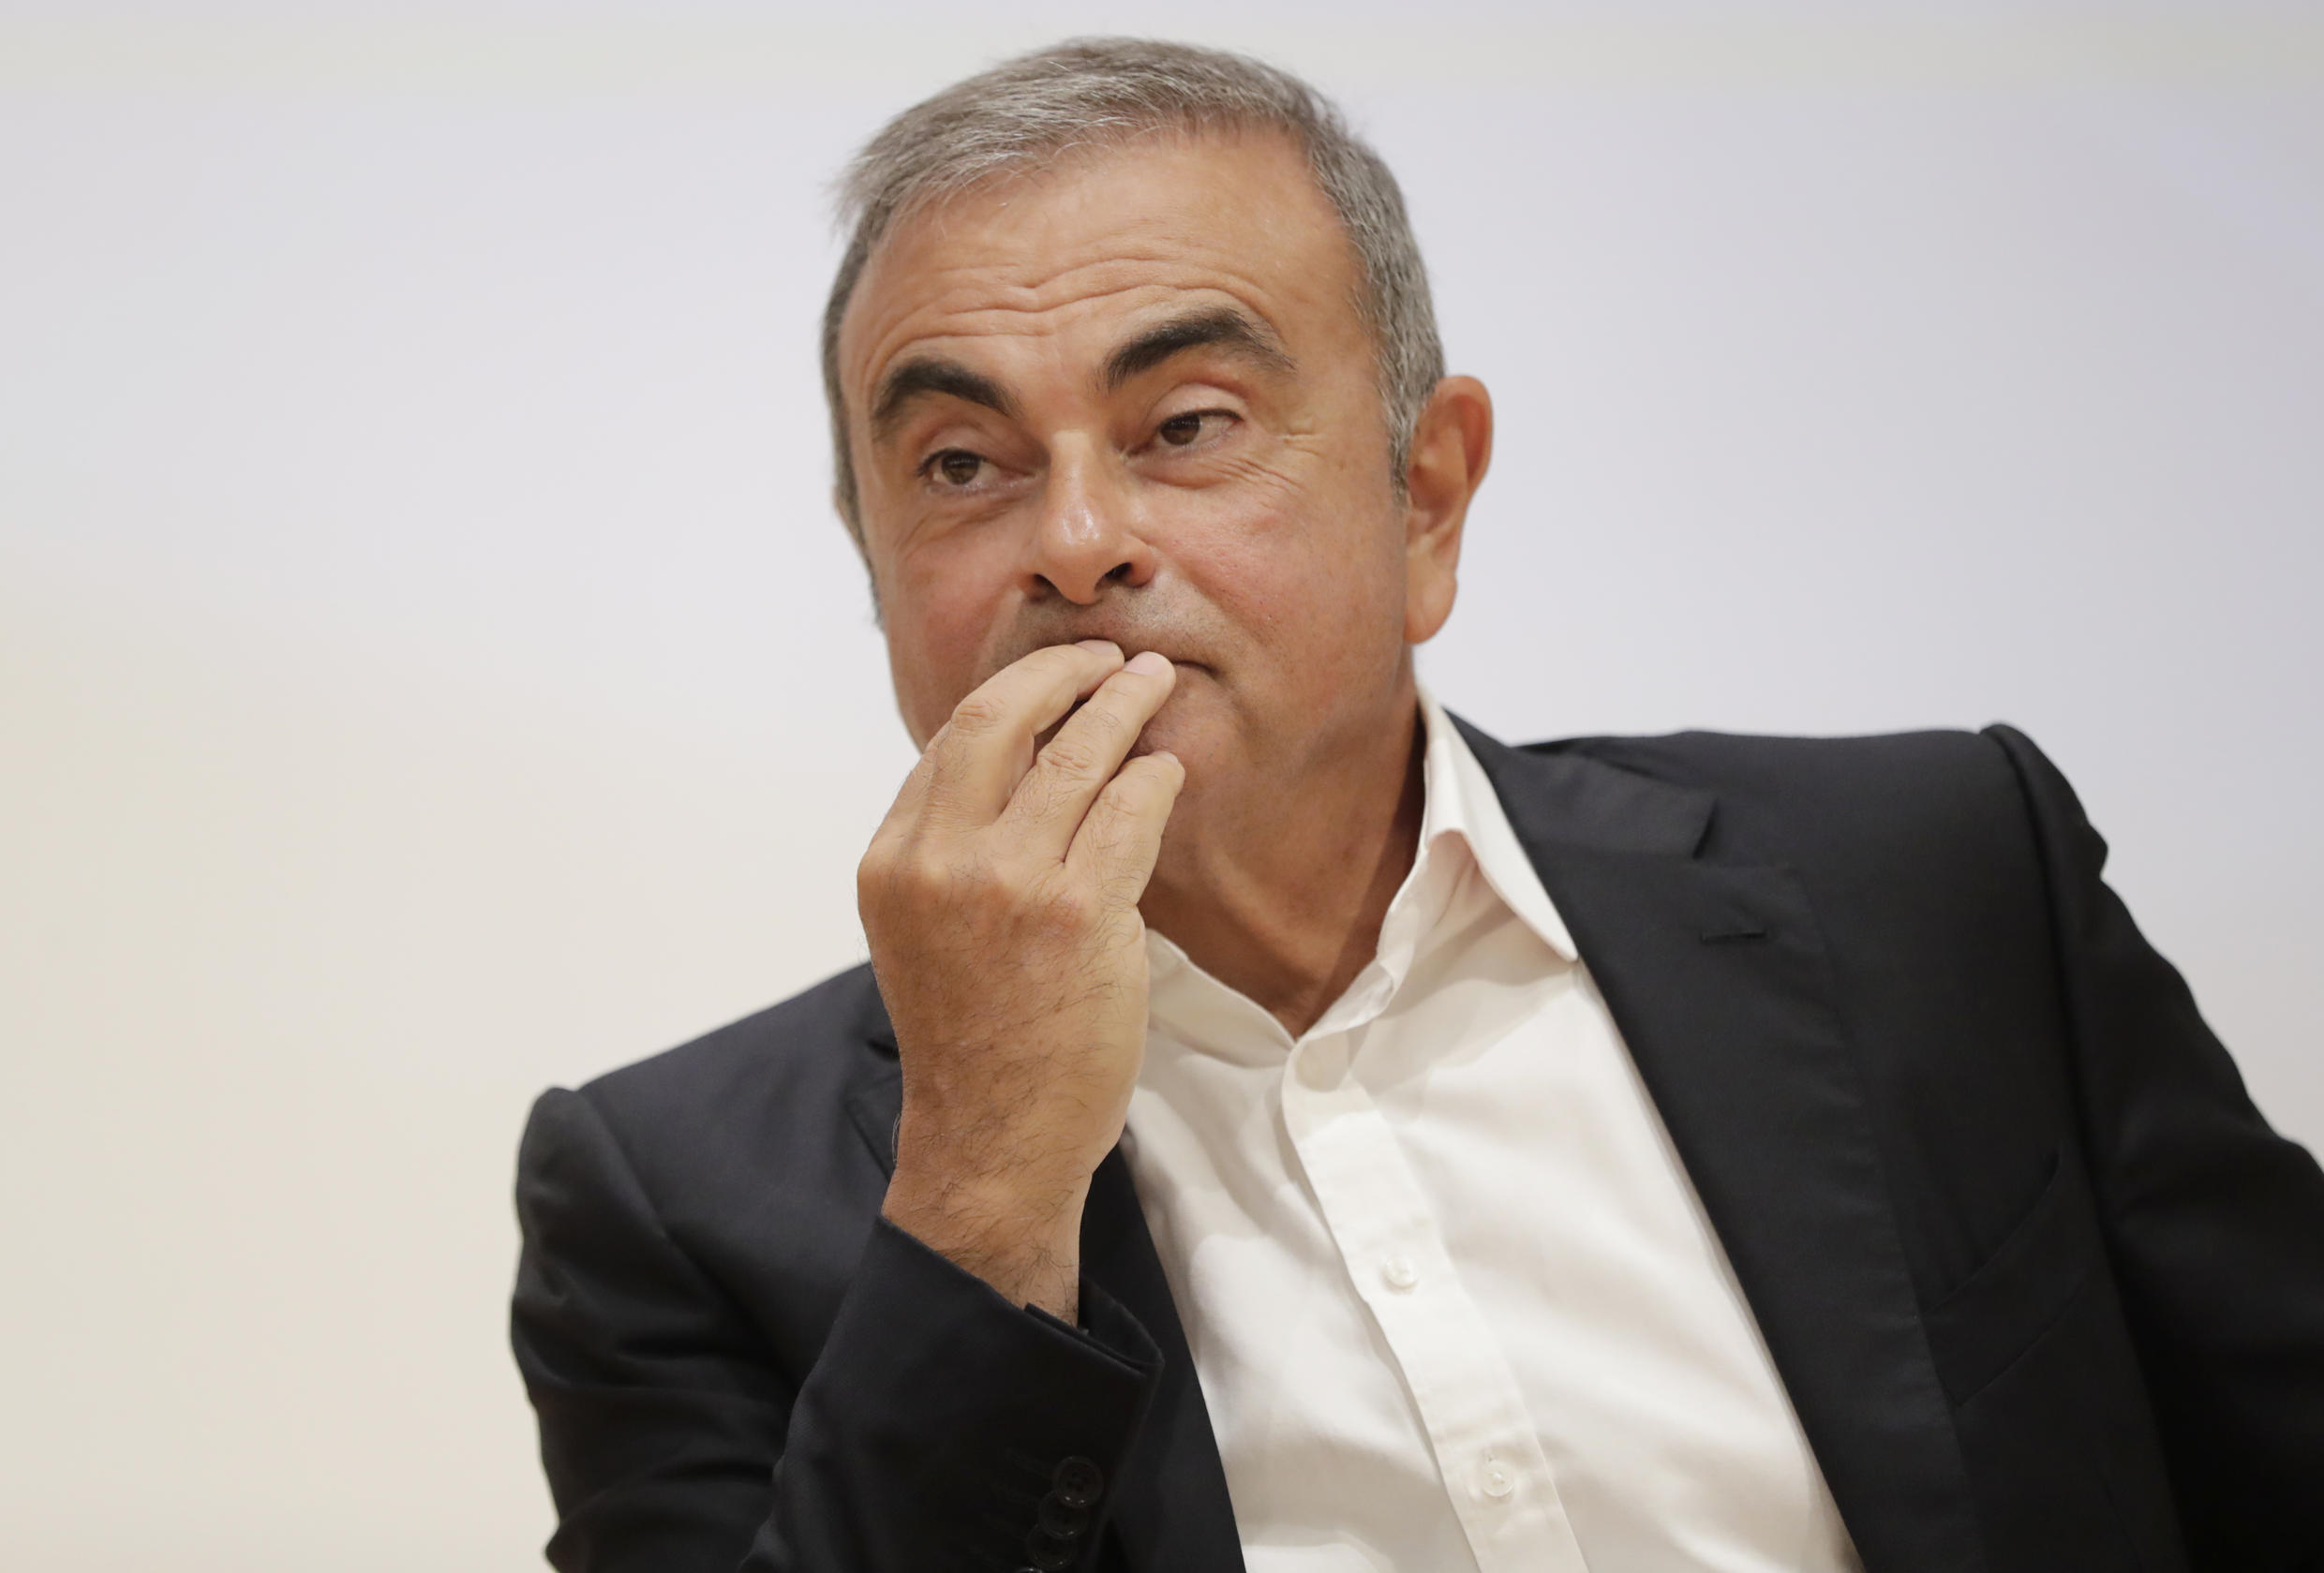 Former Renault-Nissan boss Carlos Ghosn (pictured September 2020) was arrested in November 2018 and had been expected to face trial on charges including understating his pay and misusing company assets